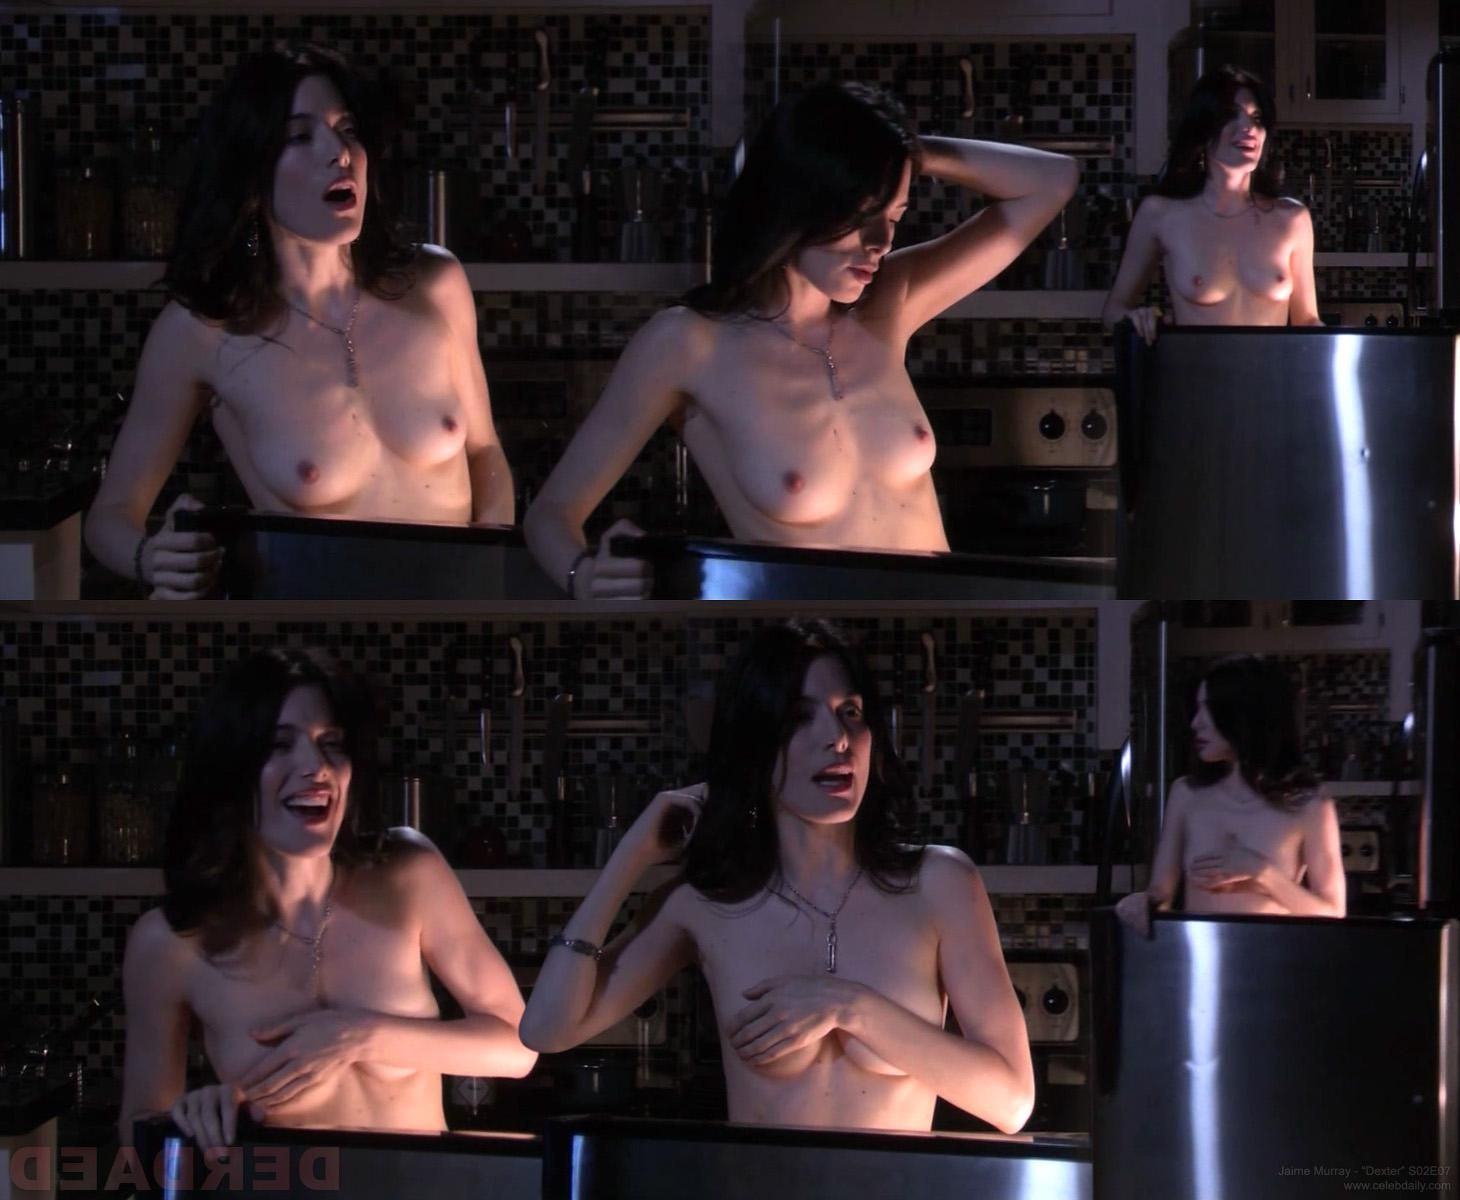 Lila of dexter naked